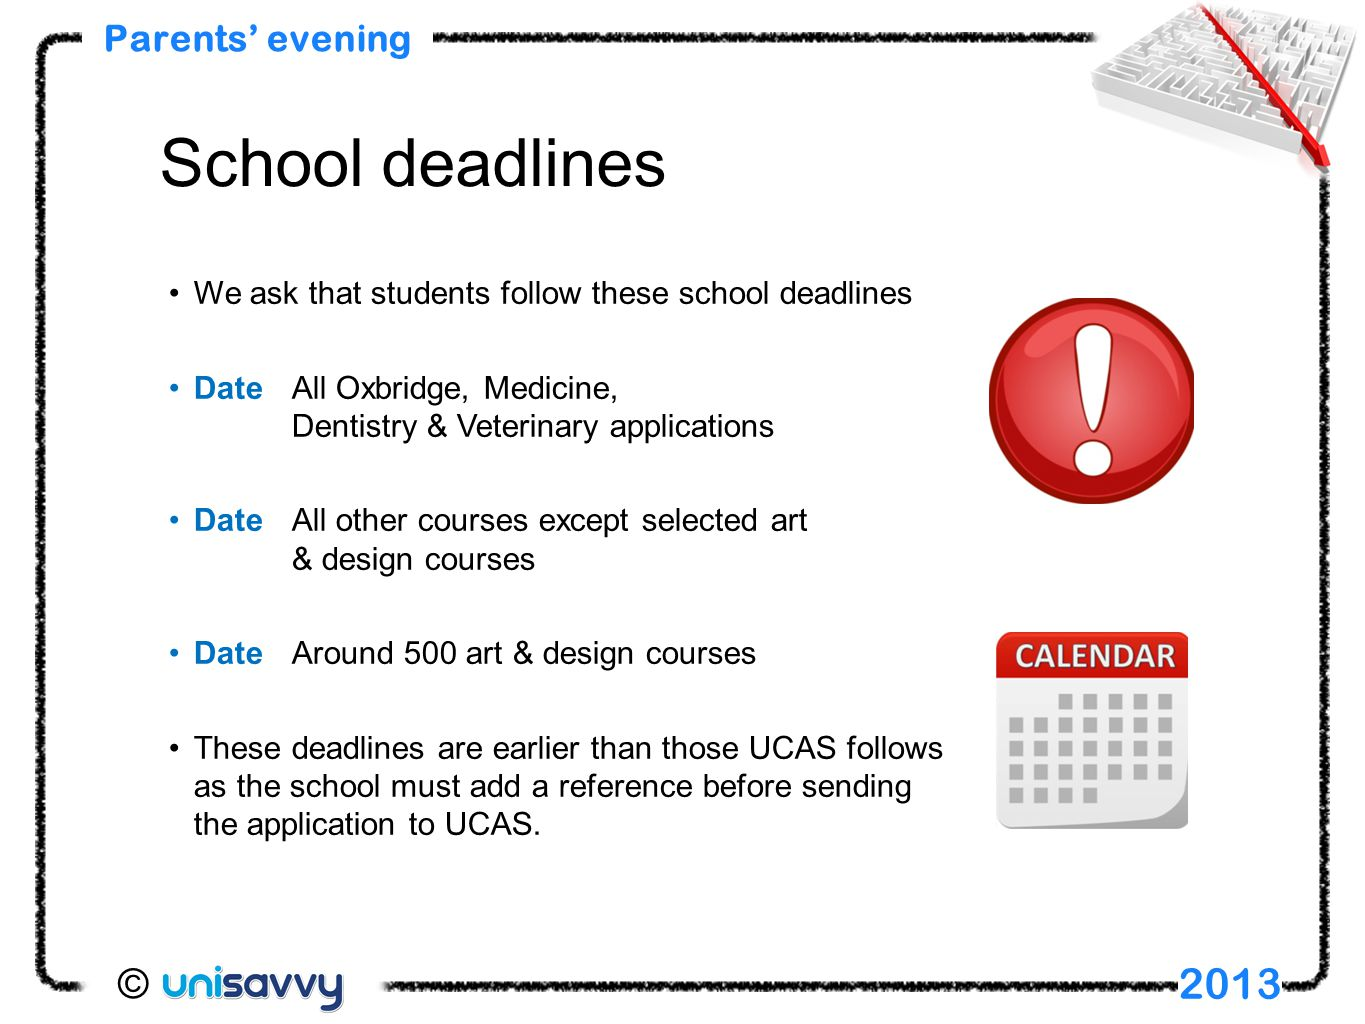 We ask that students follow these school deadlines DateAll Oxbridge, Medicine, Dentistry & Veterinary applications DateAll other courses except selected art & design courses DateAround 500 art & design courses These deadlines are earlier than those UCAS follows as the school must add a reference before sending the application to UCAS.